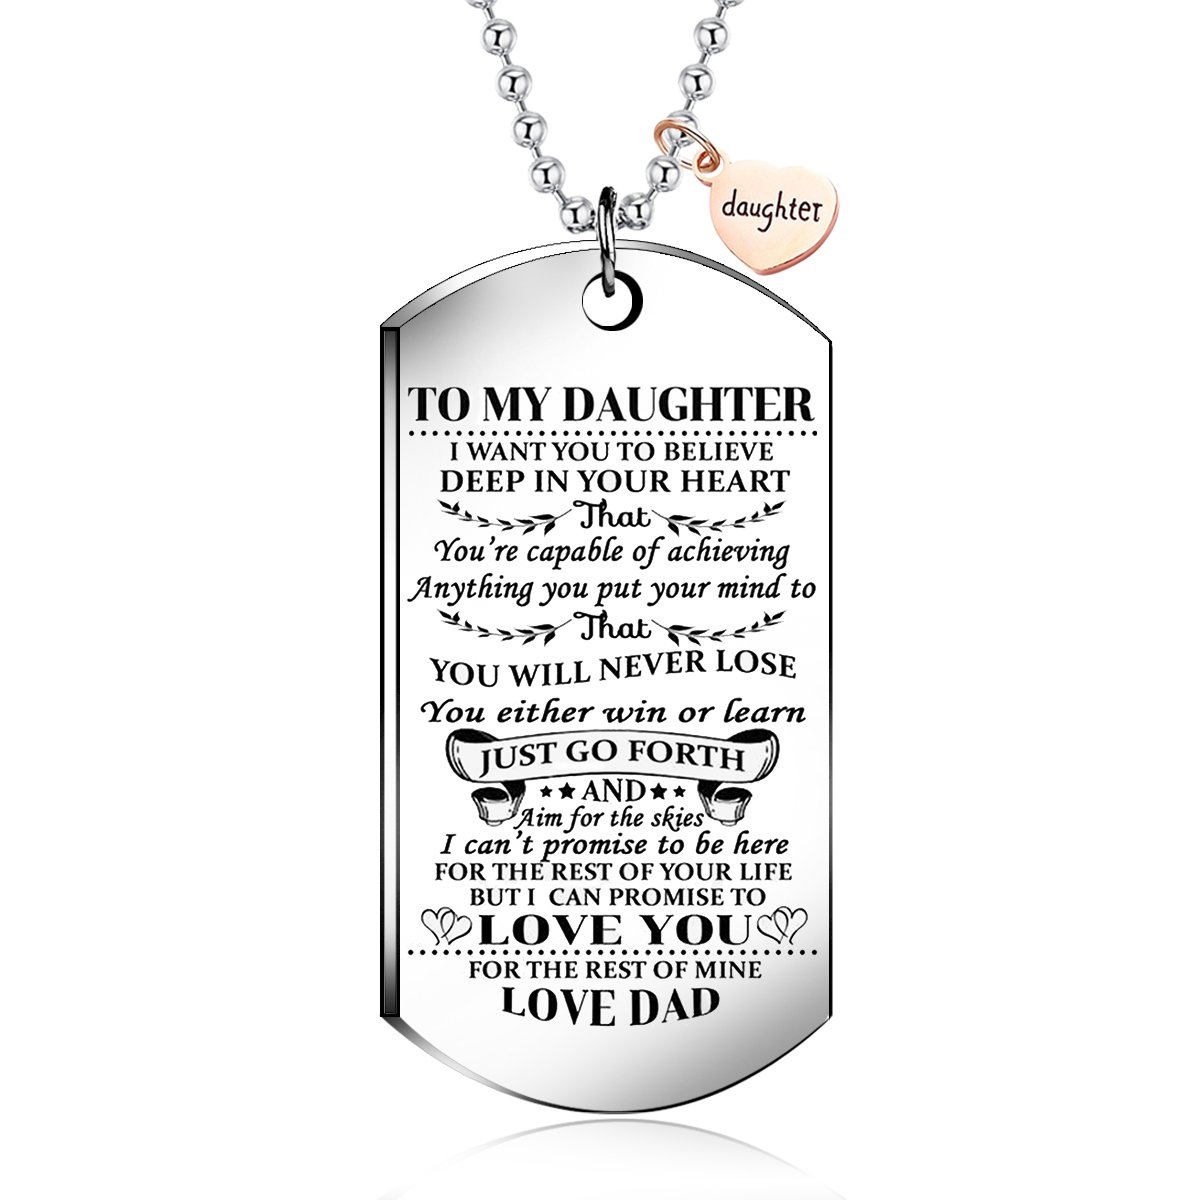 To My daughter from dad I Want You To Believe Love Dad Dog Tag Military Air Force Navy Coast Guard Necklace Ball Chain Gift for Best Son Birthday and Graduation